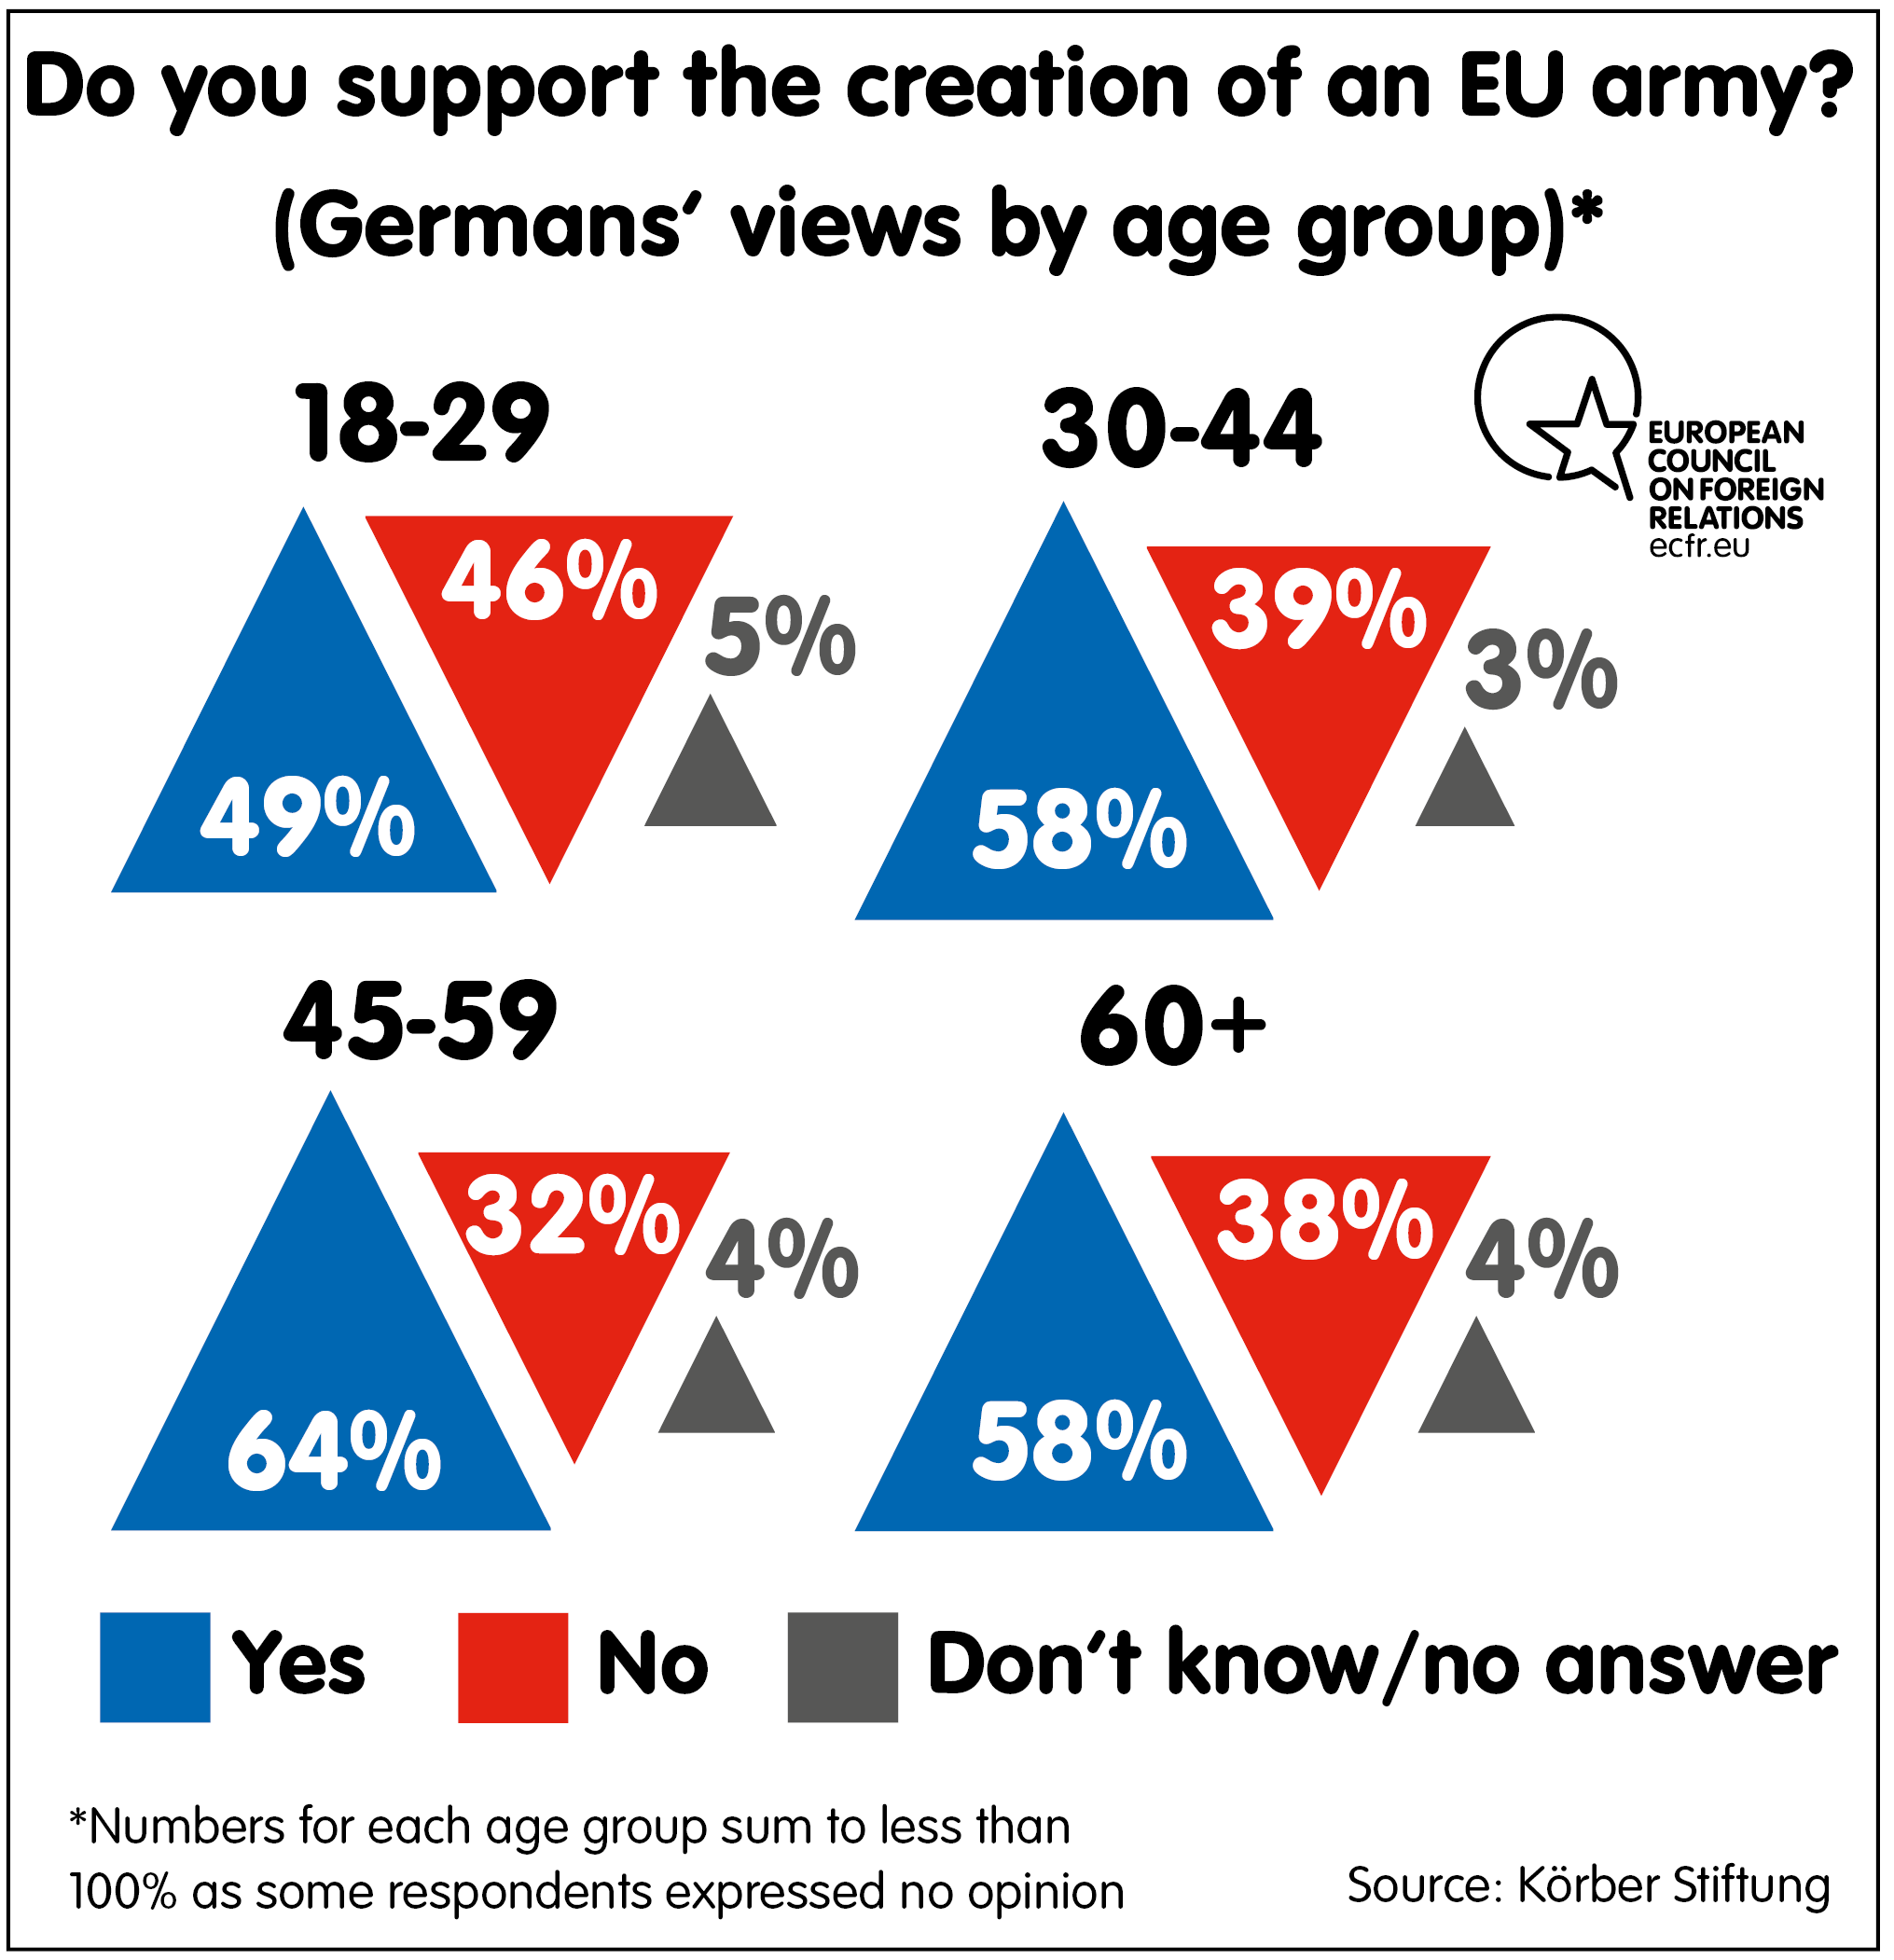 Support for creation of EU Army